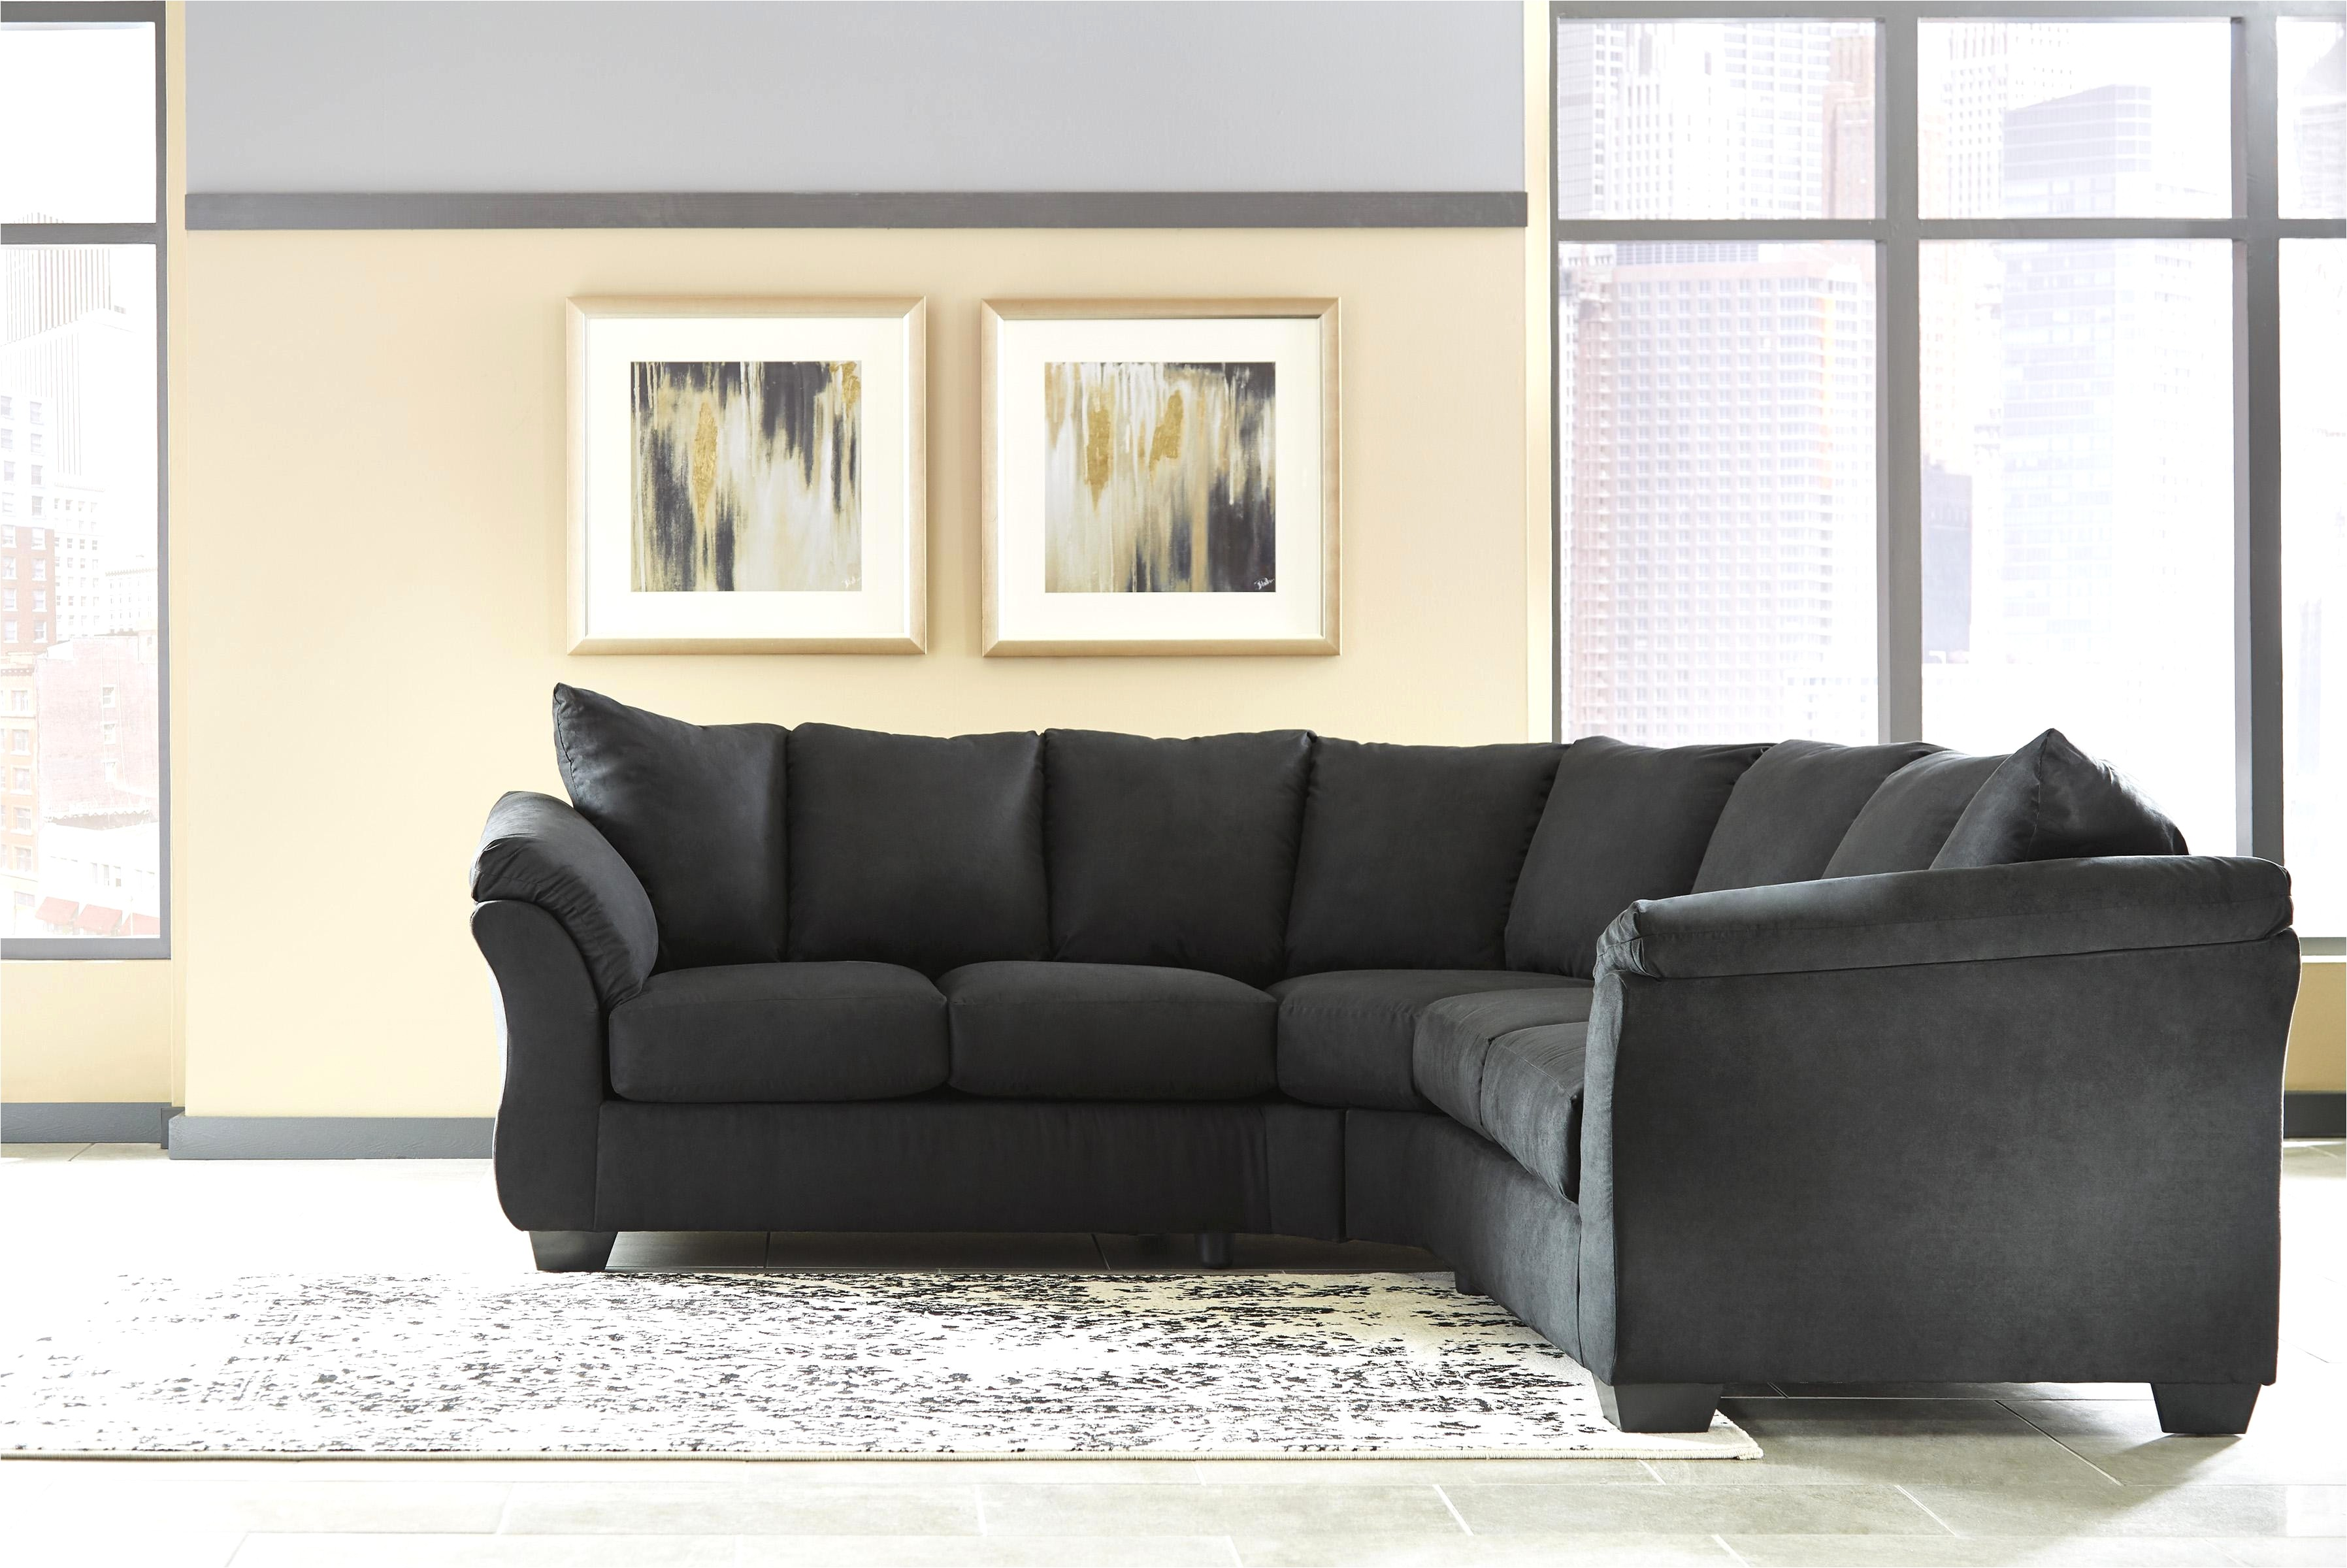 Reclining sofa Gray 50 Unique Gray Leather Reclining sofa Graphics 50 Photos Home